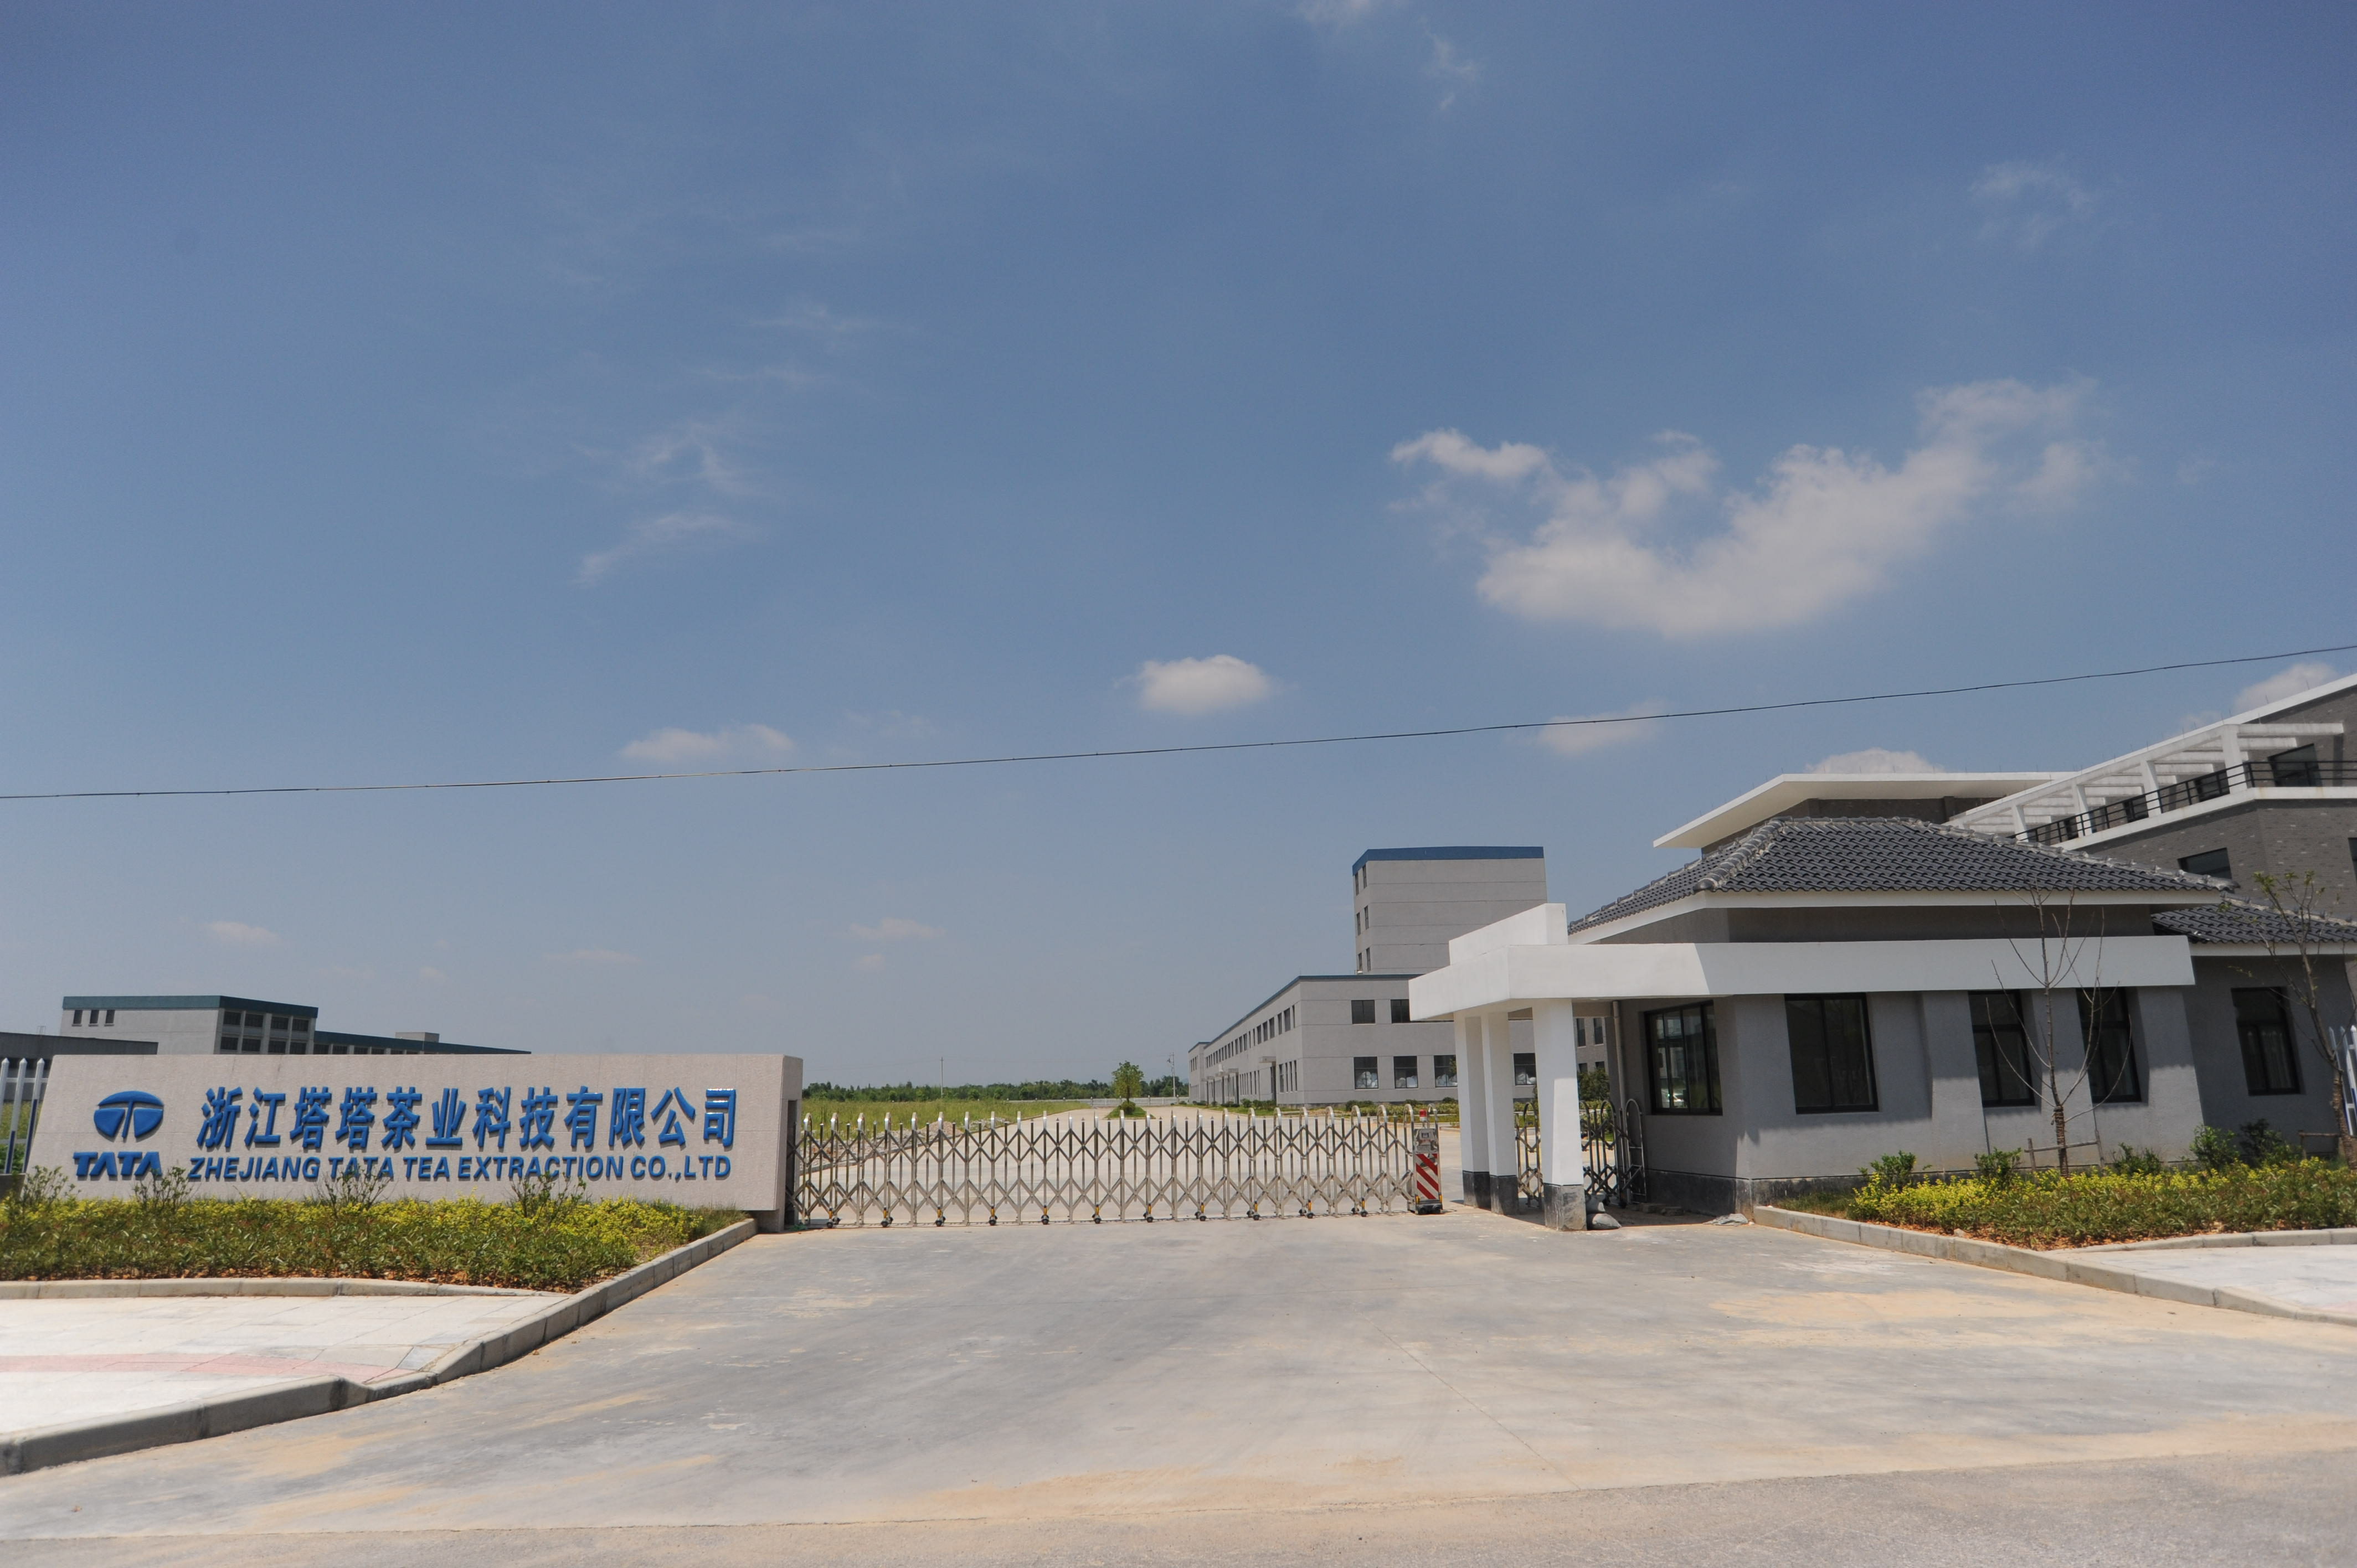 Firsd Tea Facilities in China Allow Us to Produce a Variety of Tea Extracts and Ingredients